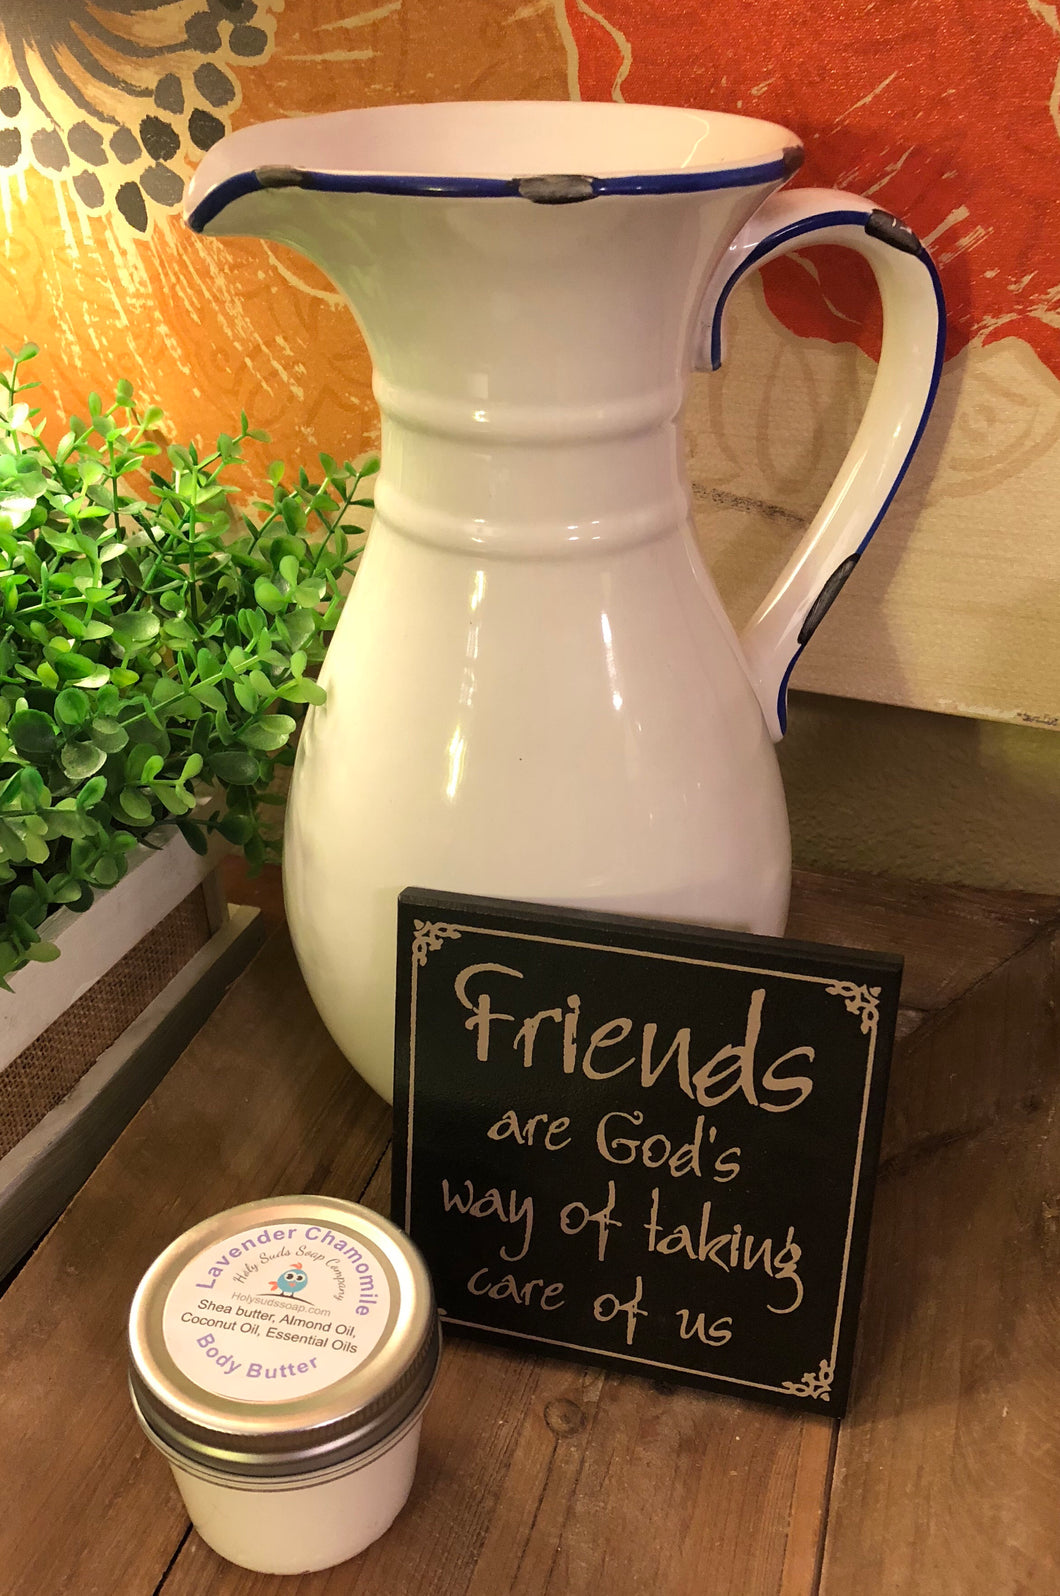 Vintage Ceramic Pitcher, Friends Sign + Shea Whipped Body Butter